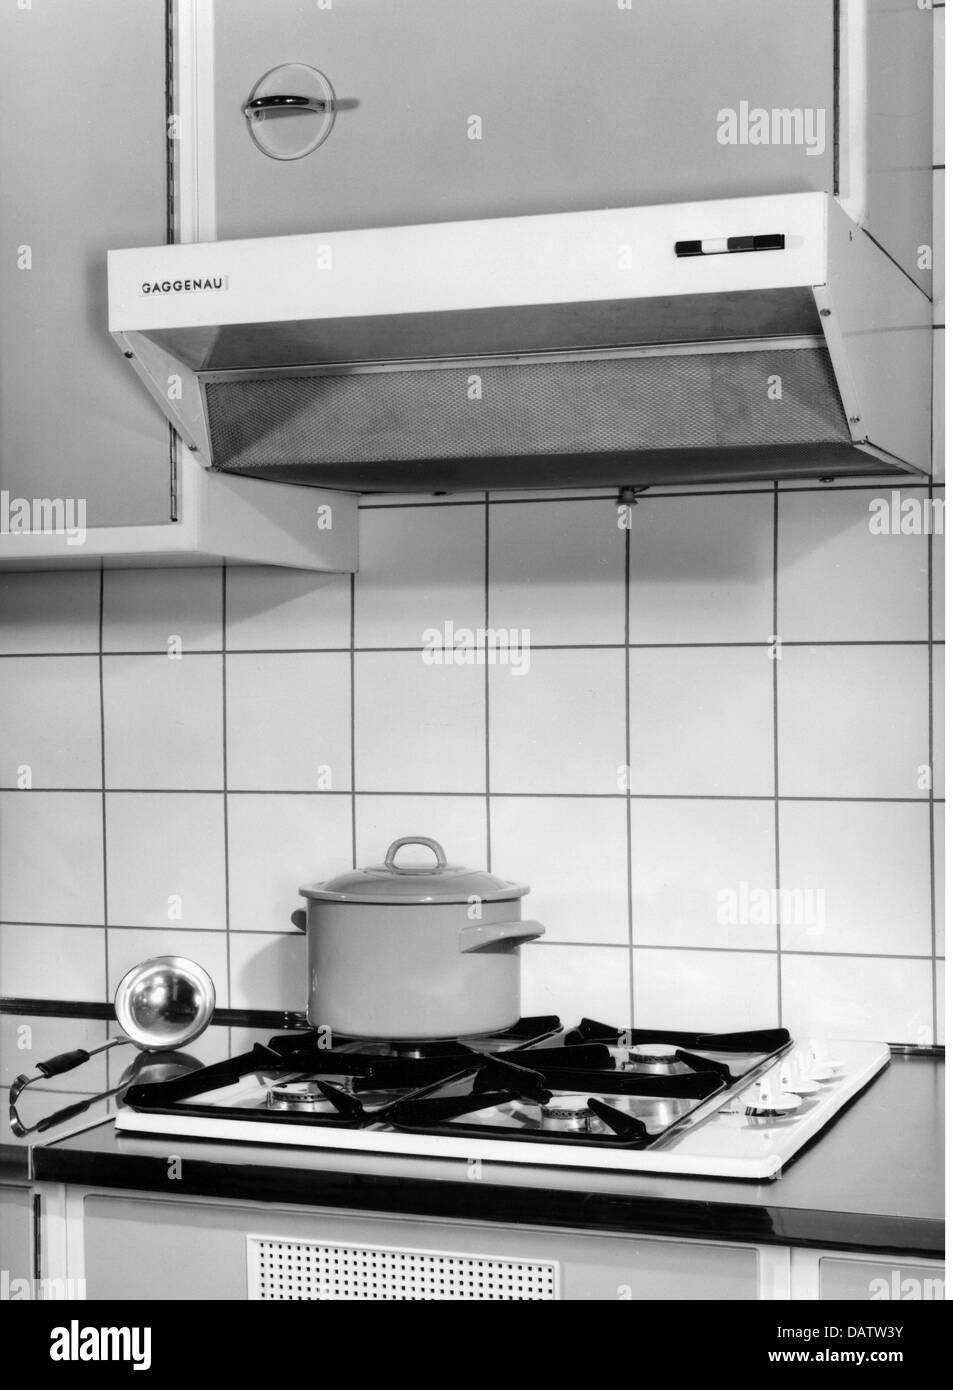 Stove Hoods Stock Photos & Stove Hoods Stock Images - Alamy